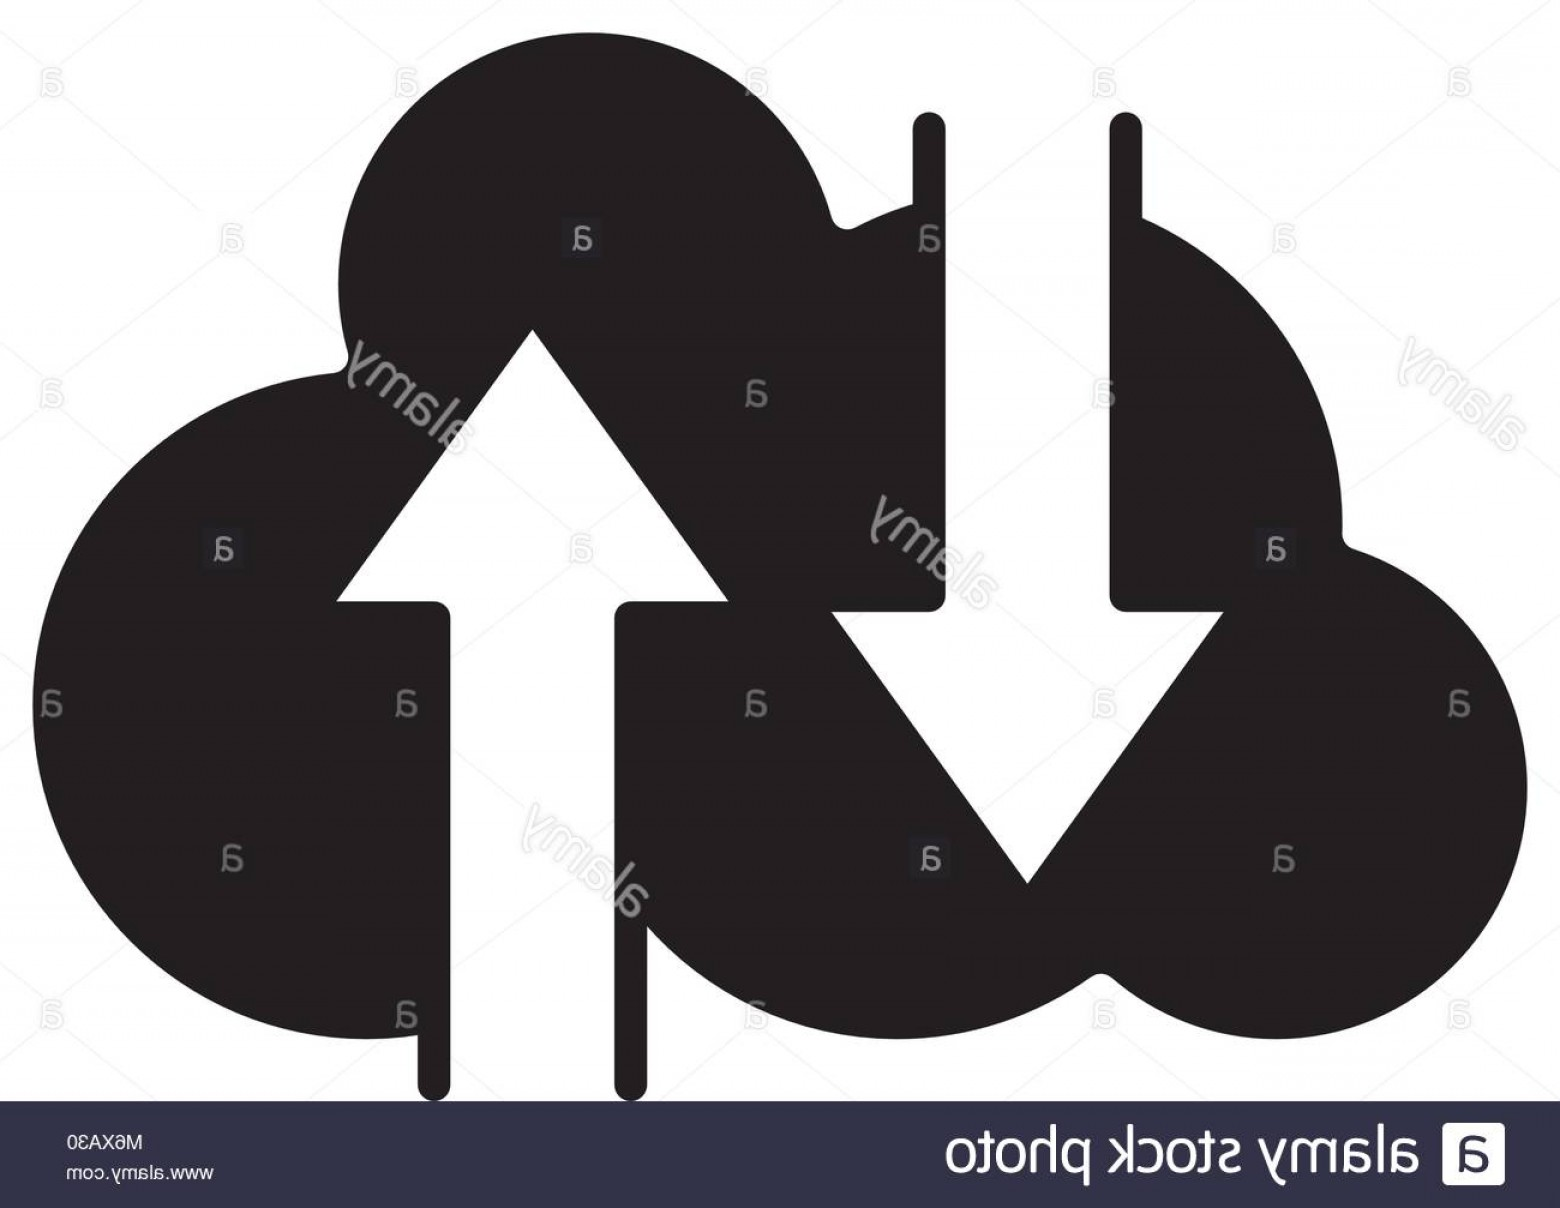 Downloadable Vector Art: Stock Photo Silhouette Cloud Data Loading And Downloading Server Vector Illustration